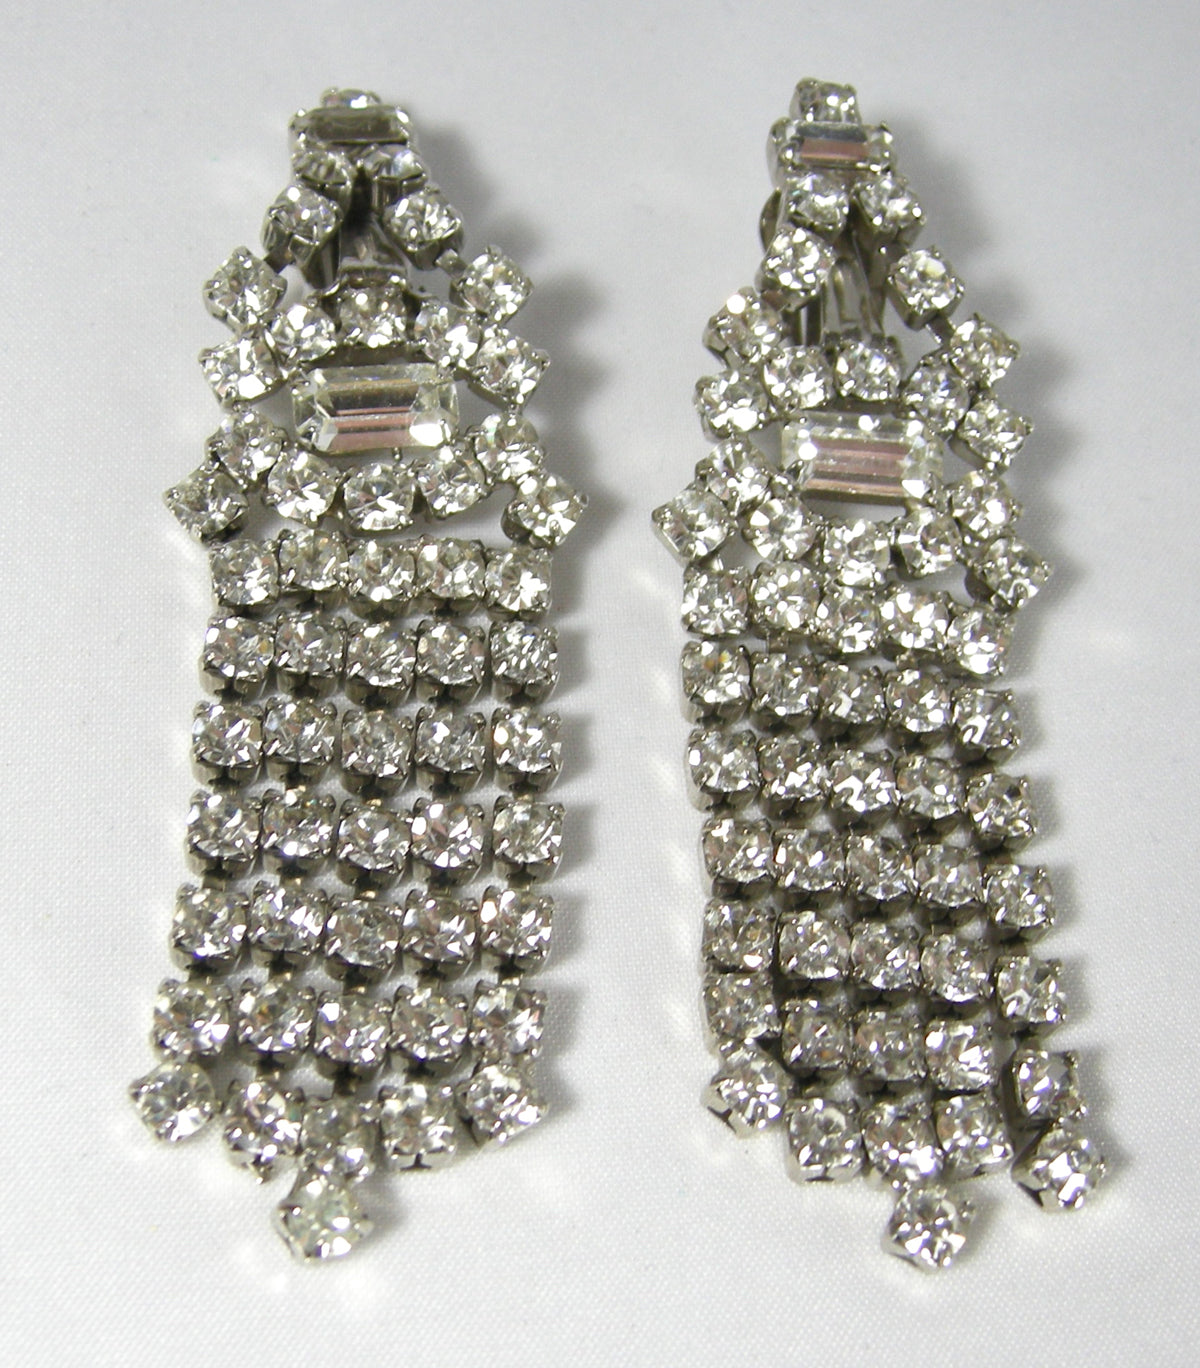 2 34 Long NY Estate Jewelry Dramatic Vintage Dangling Rhinestone /& Silver Link Clip Back Earrings